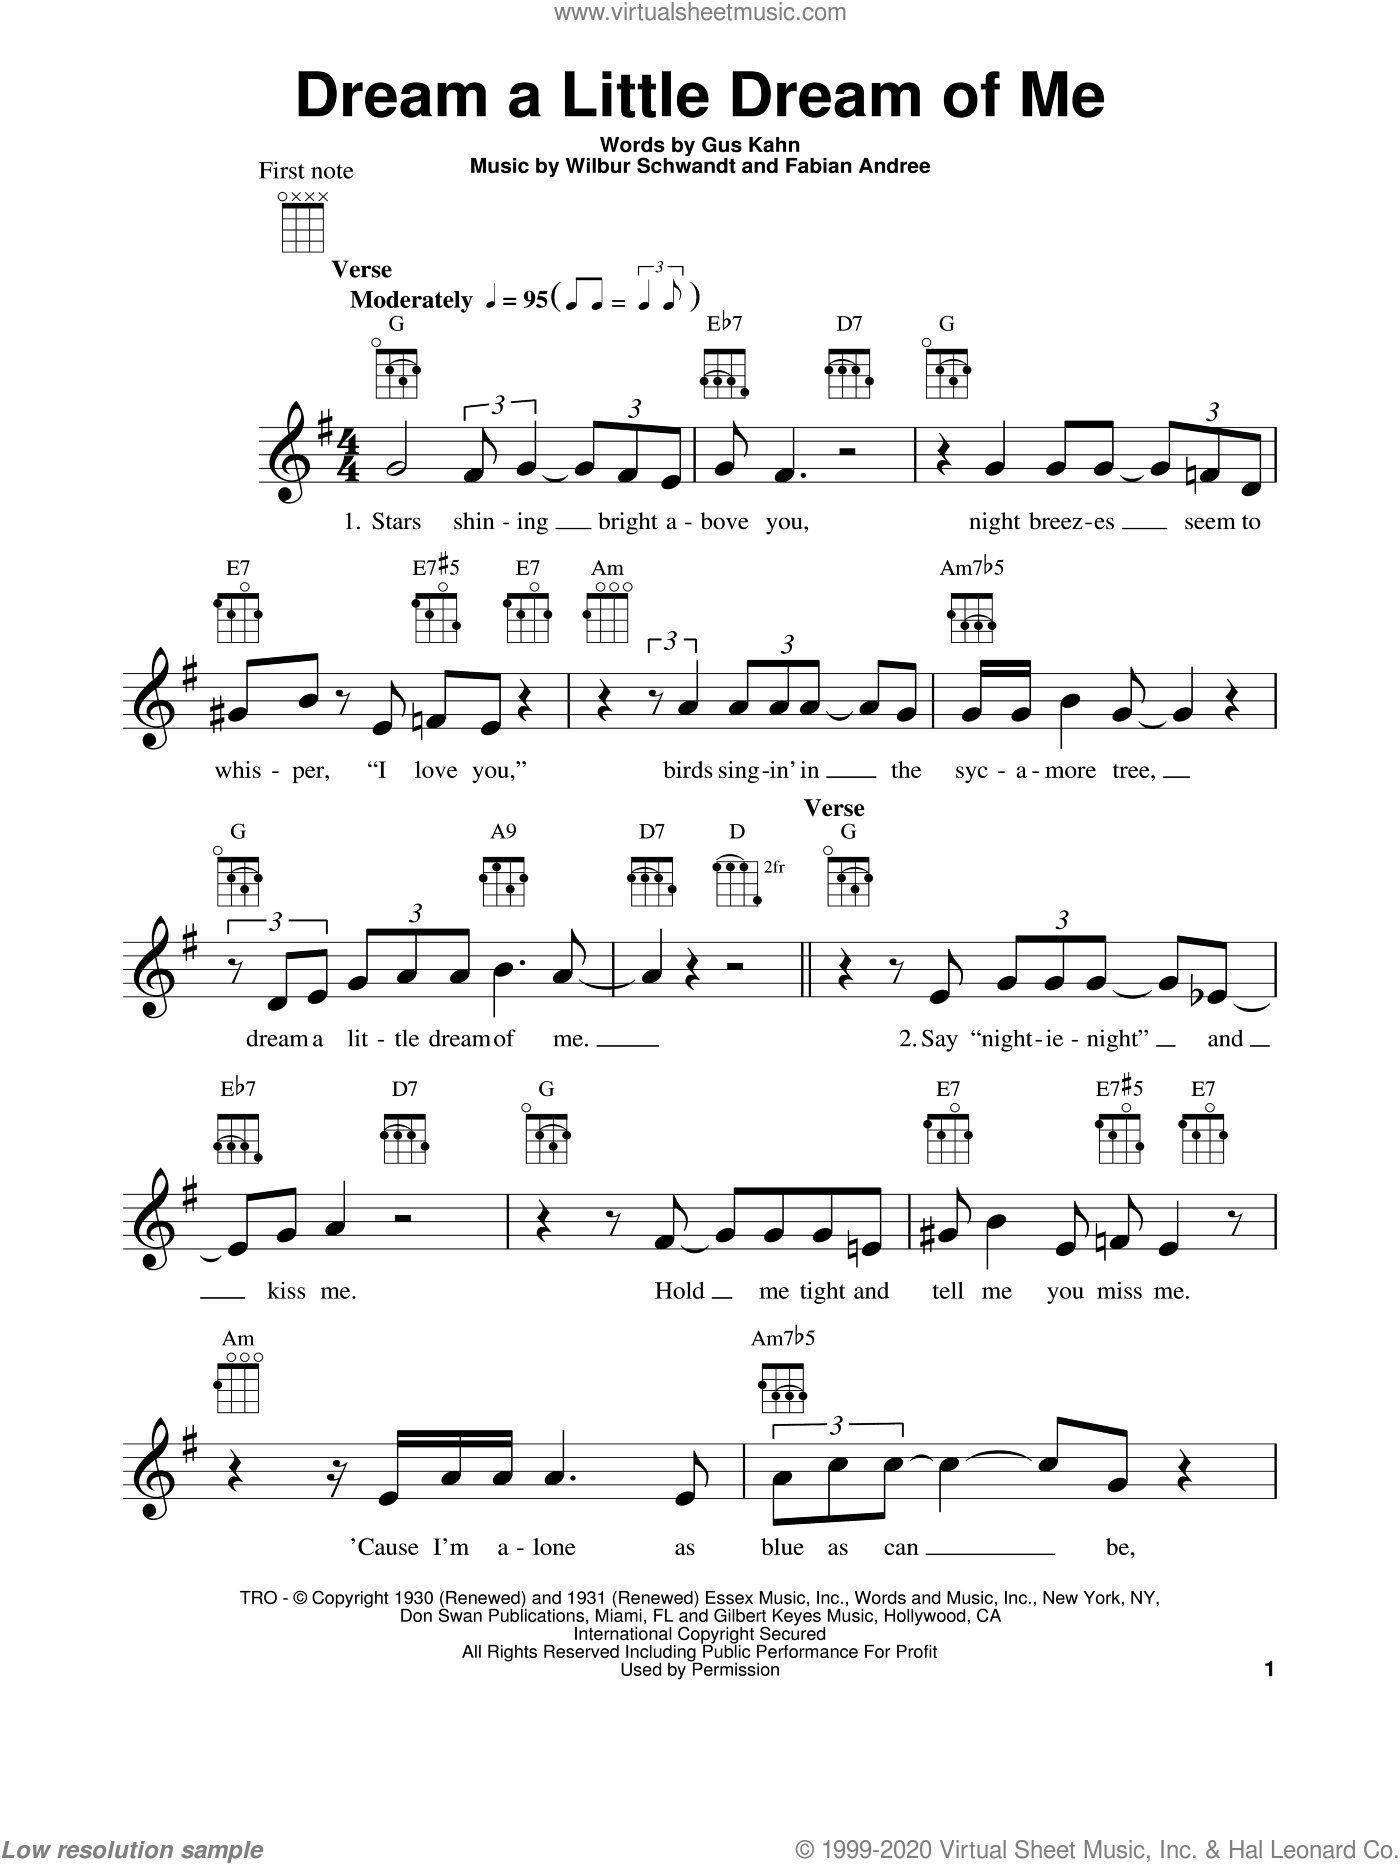 Dream A Little Dream Of Me sheet music for ukulele by The Mamas & The Papas, Fabian Andree, Gus Kahn and Wilbur Schwandt, intermediate skill level